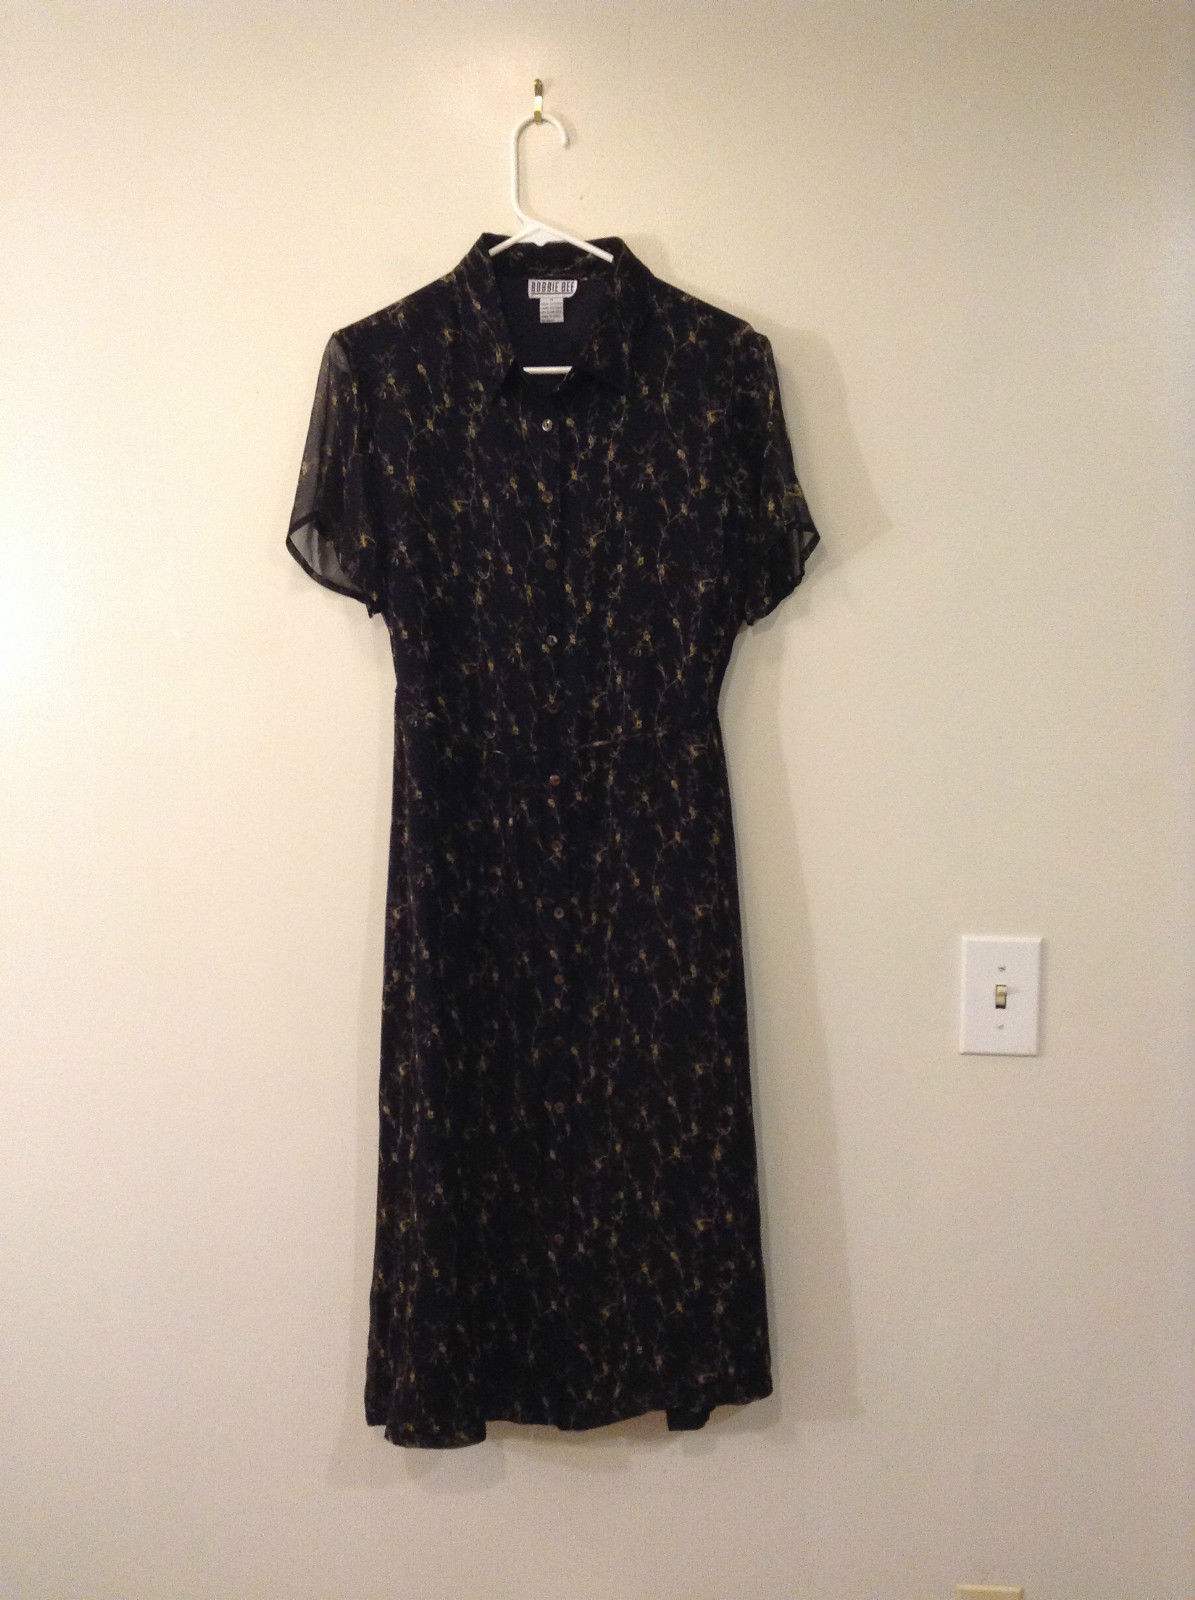 Robbie Bee 100 Percent Silk Short Sleeve Black with Flowers Lined Dress Size 10